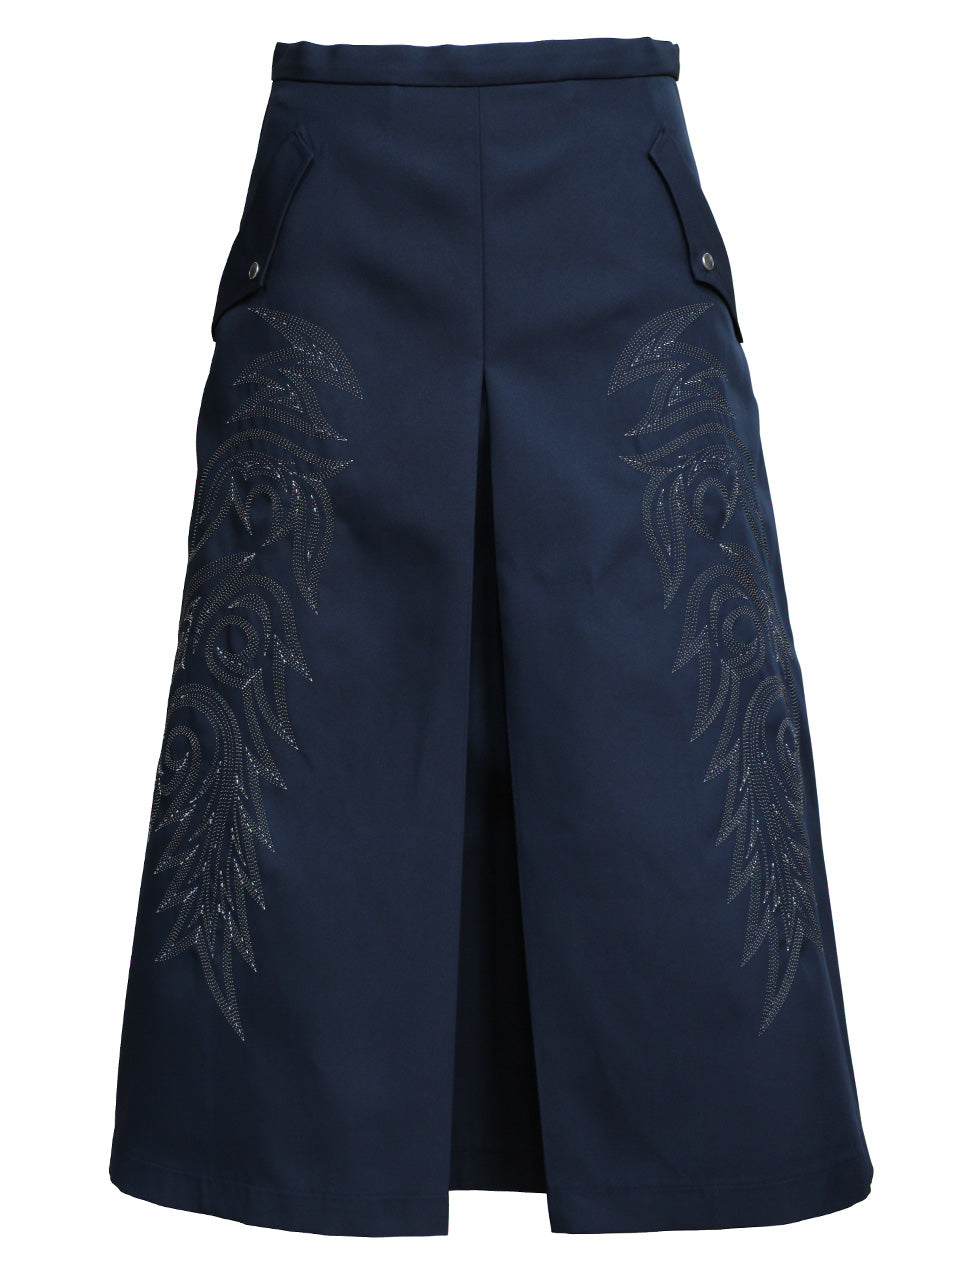 Embroidery Skirt (navy)